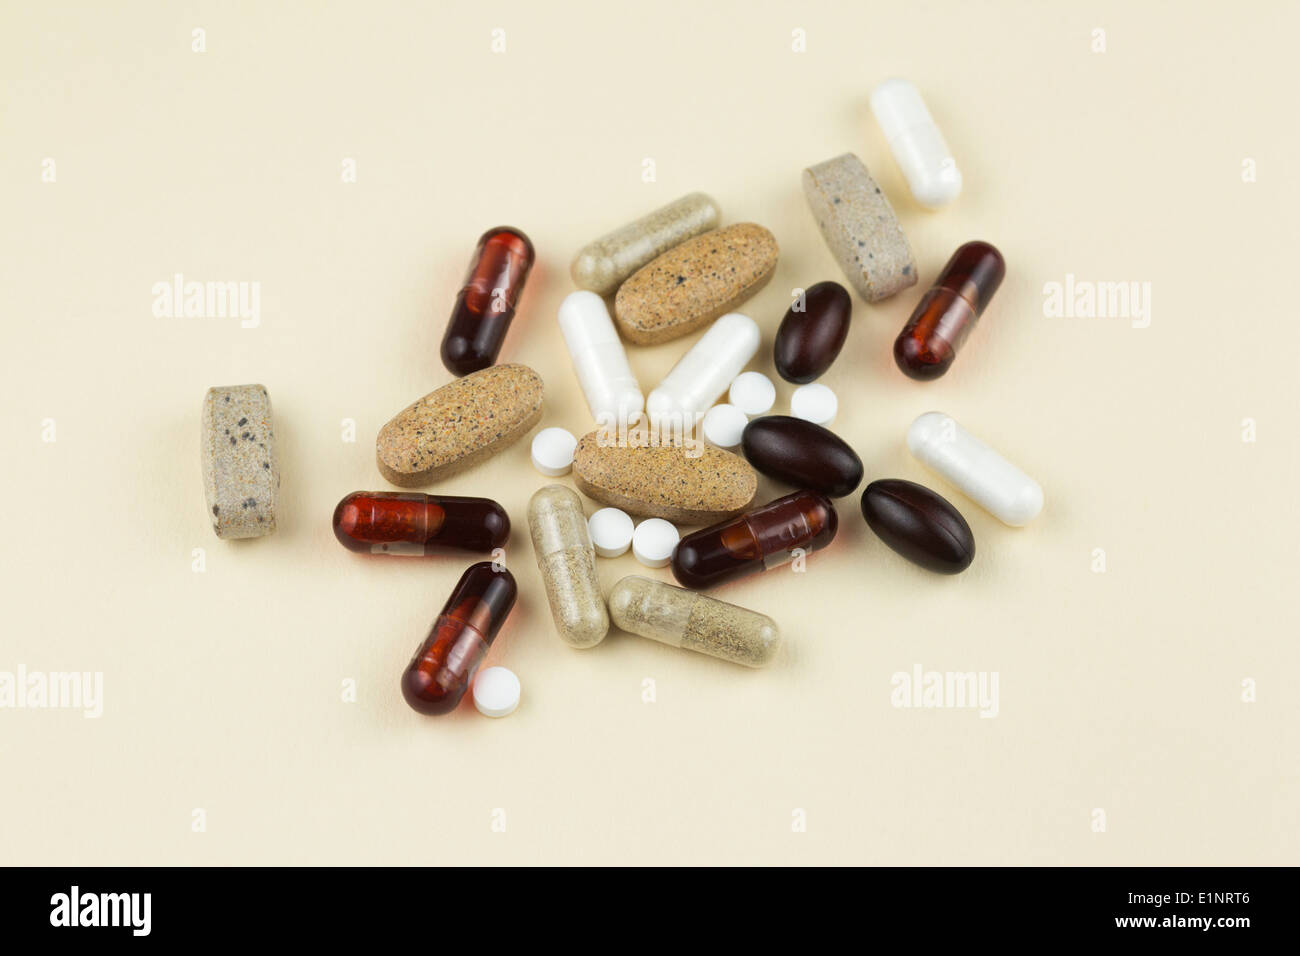 Vitamines et suppléments (multivitamines, la vitamine D, la coenzyme Q10, vitamine K2, l'huile de krill) Photo Stock